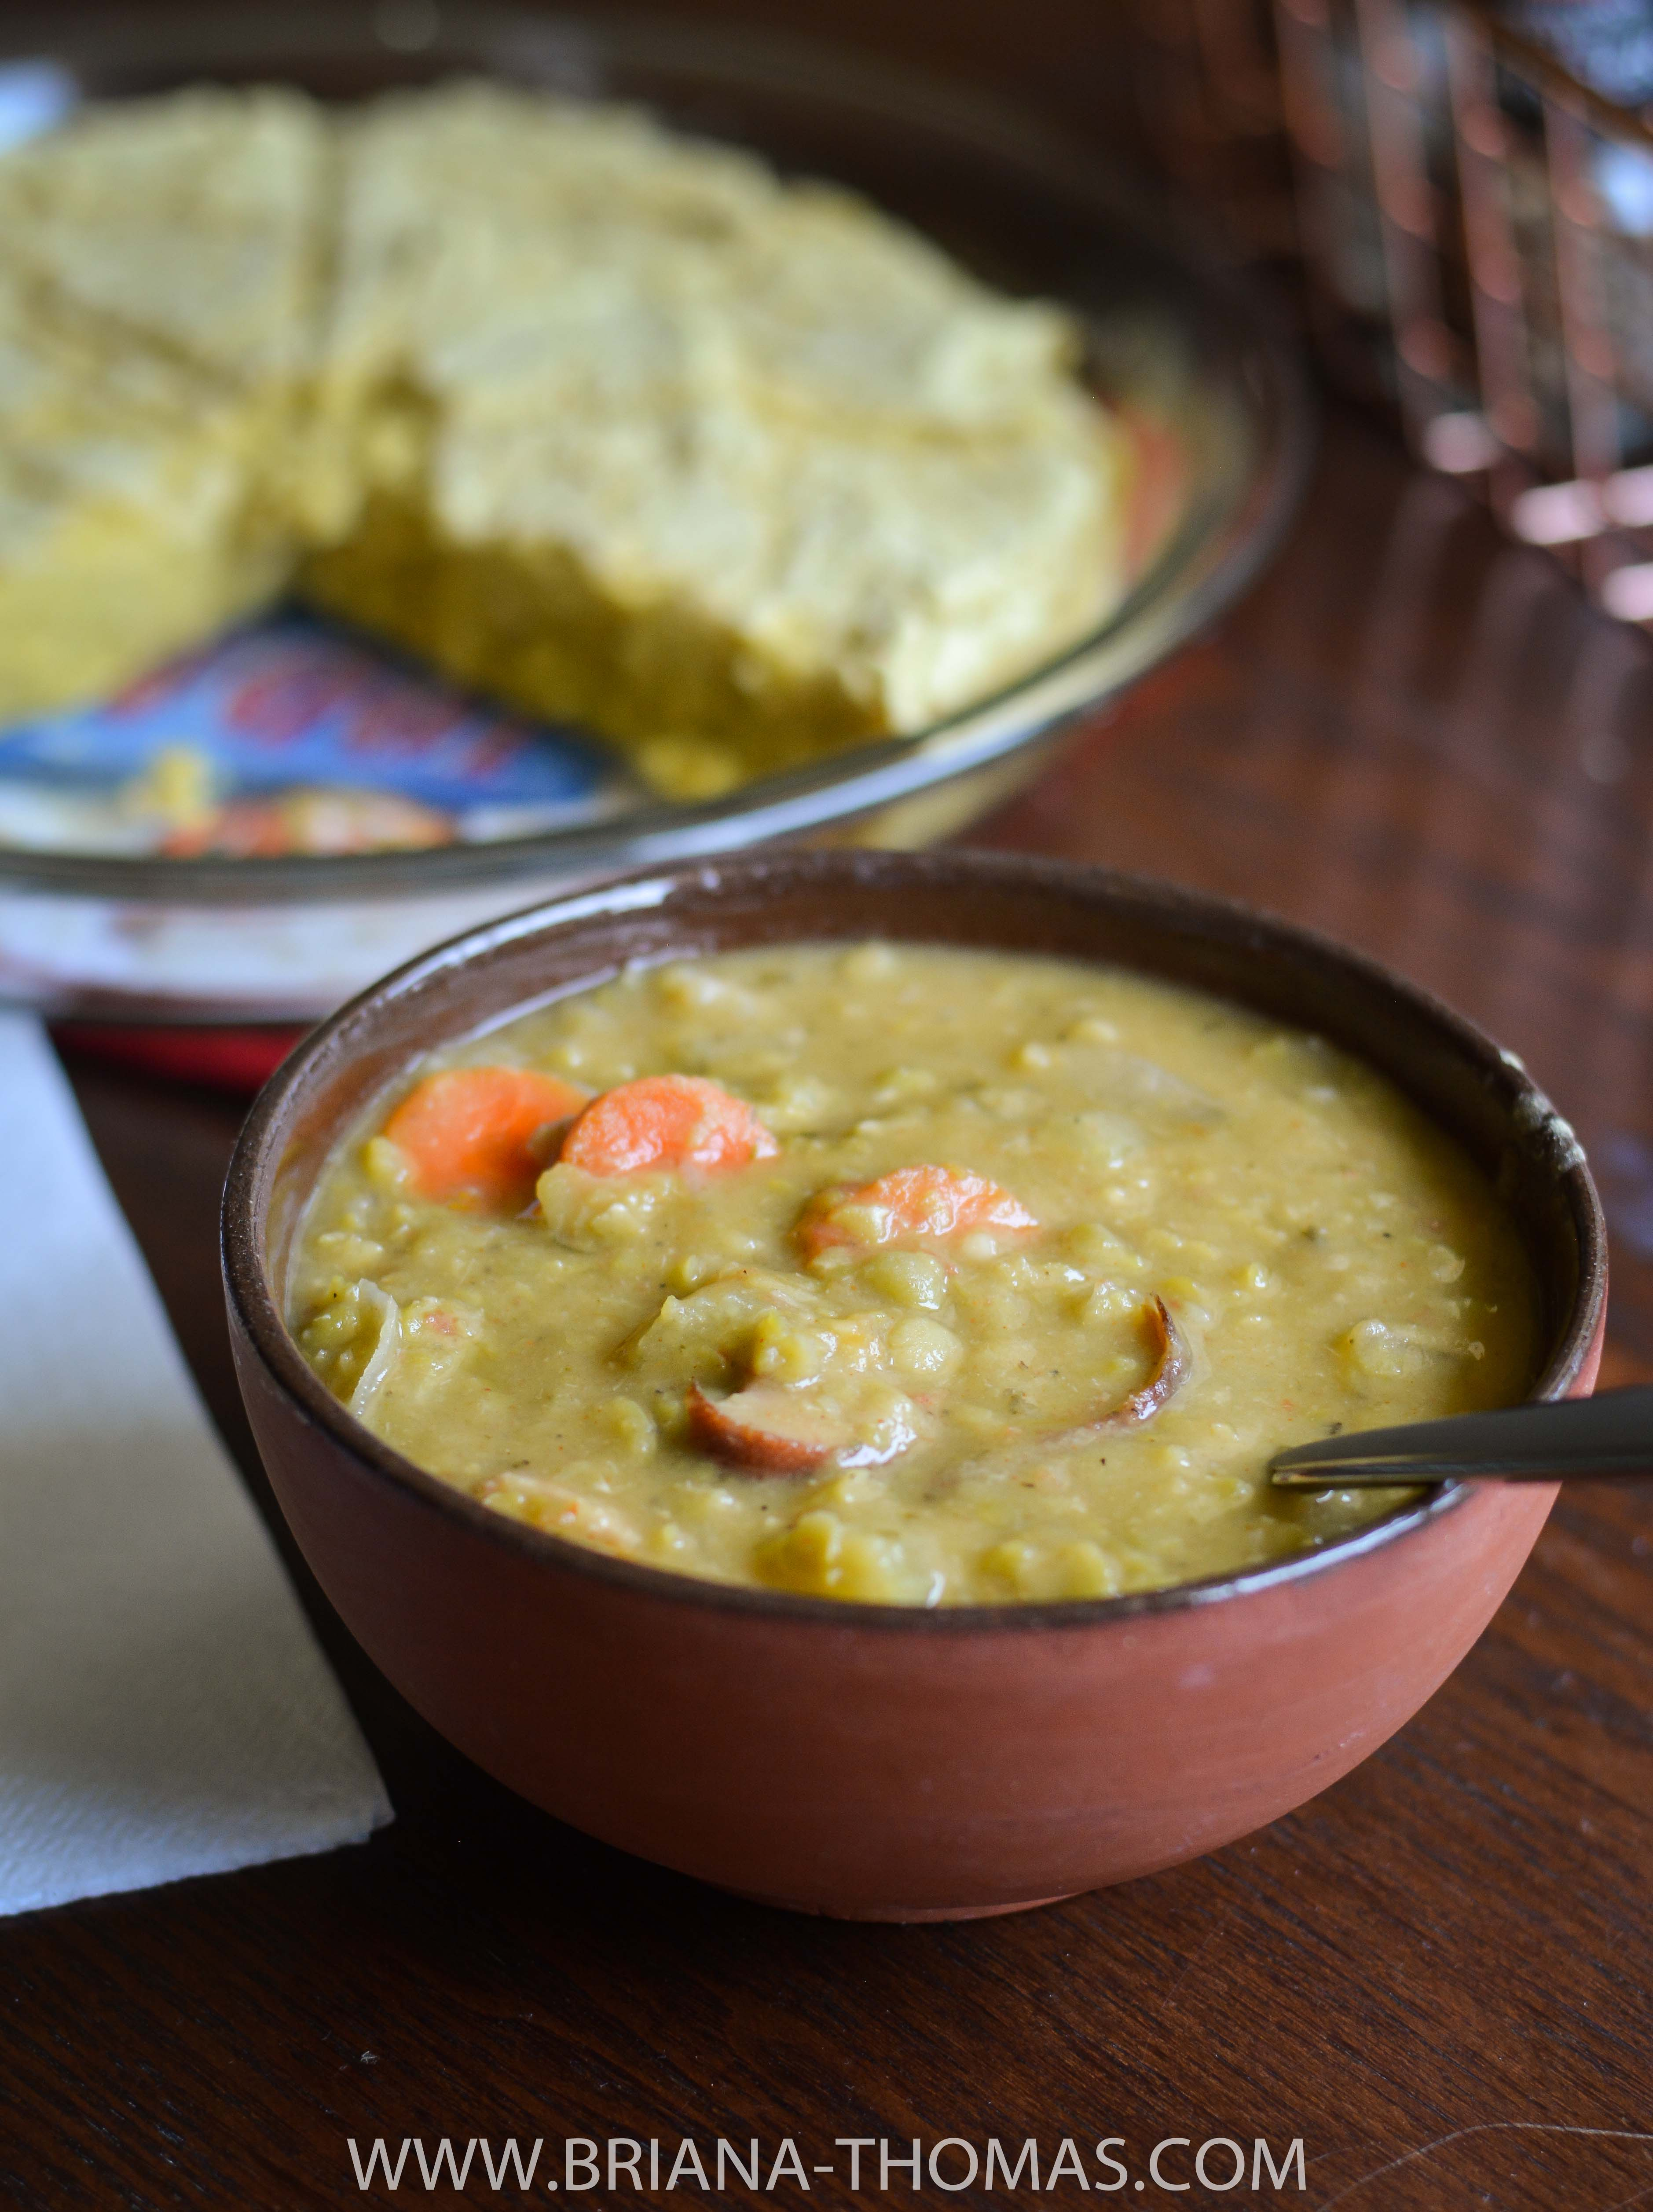 This Split Pea Soup is a super easy slow cooker comfort food meal that pairs perfectly with cornbread for a THM E dinner. Low fat, gluten/egg/dairy/nut free